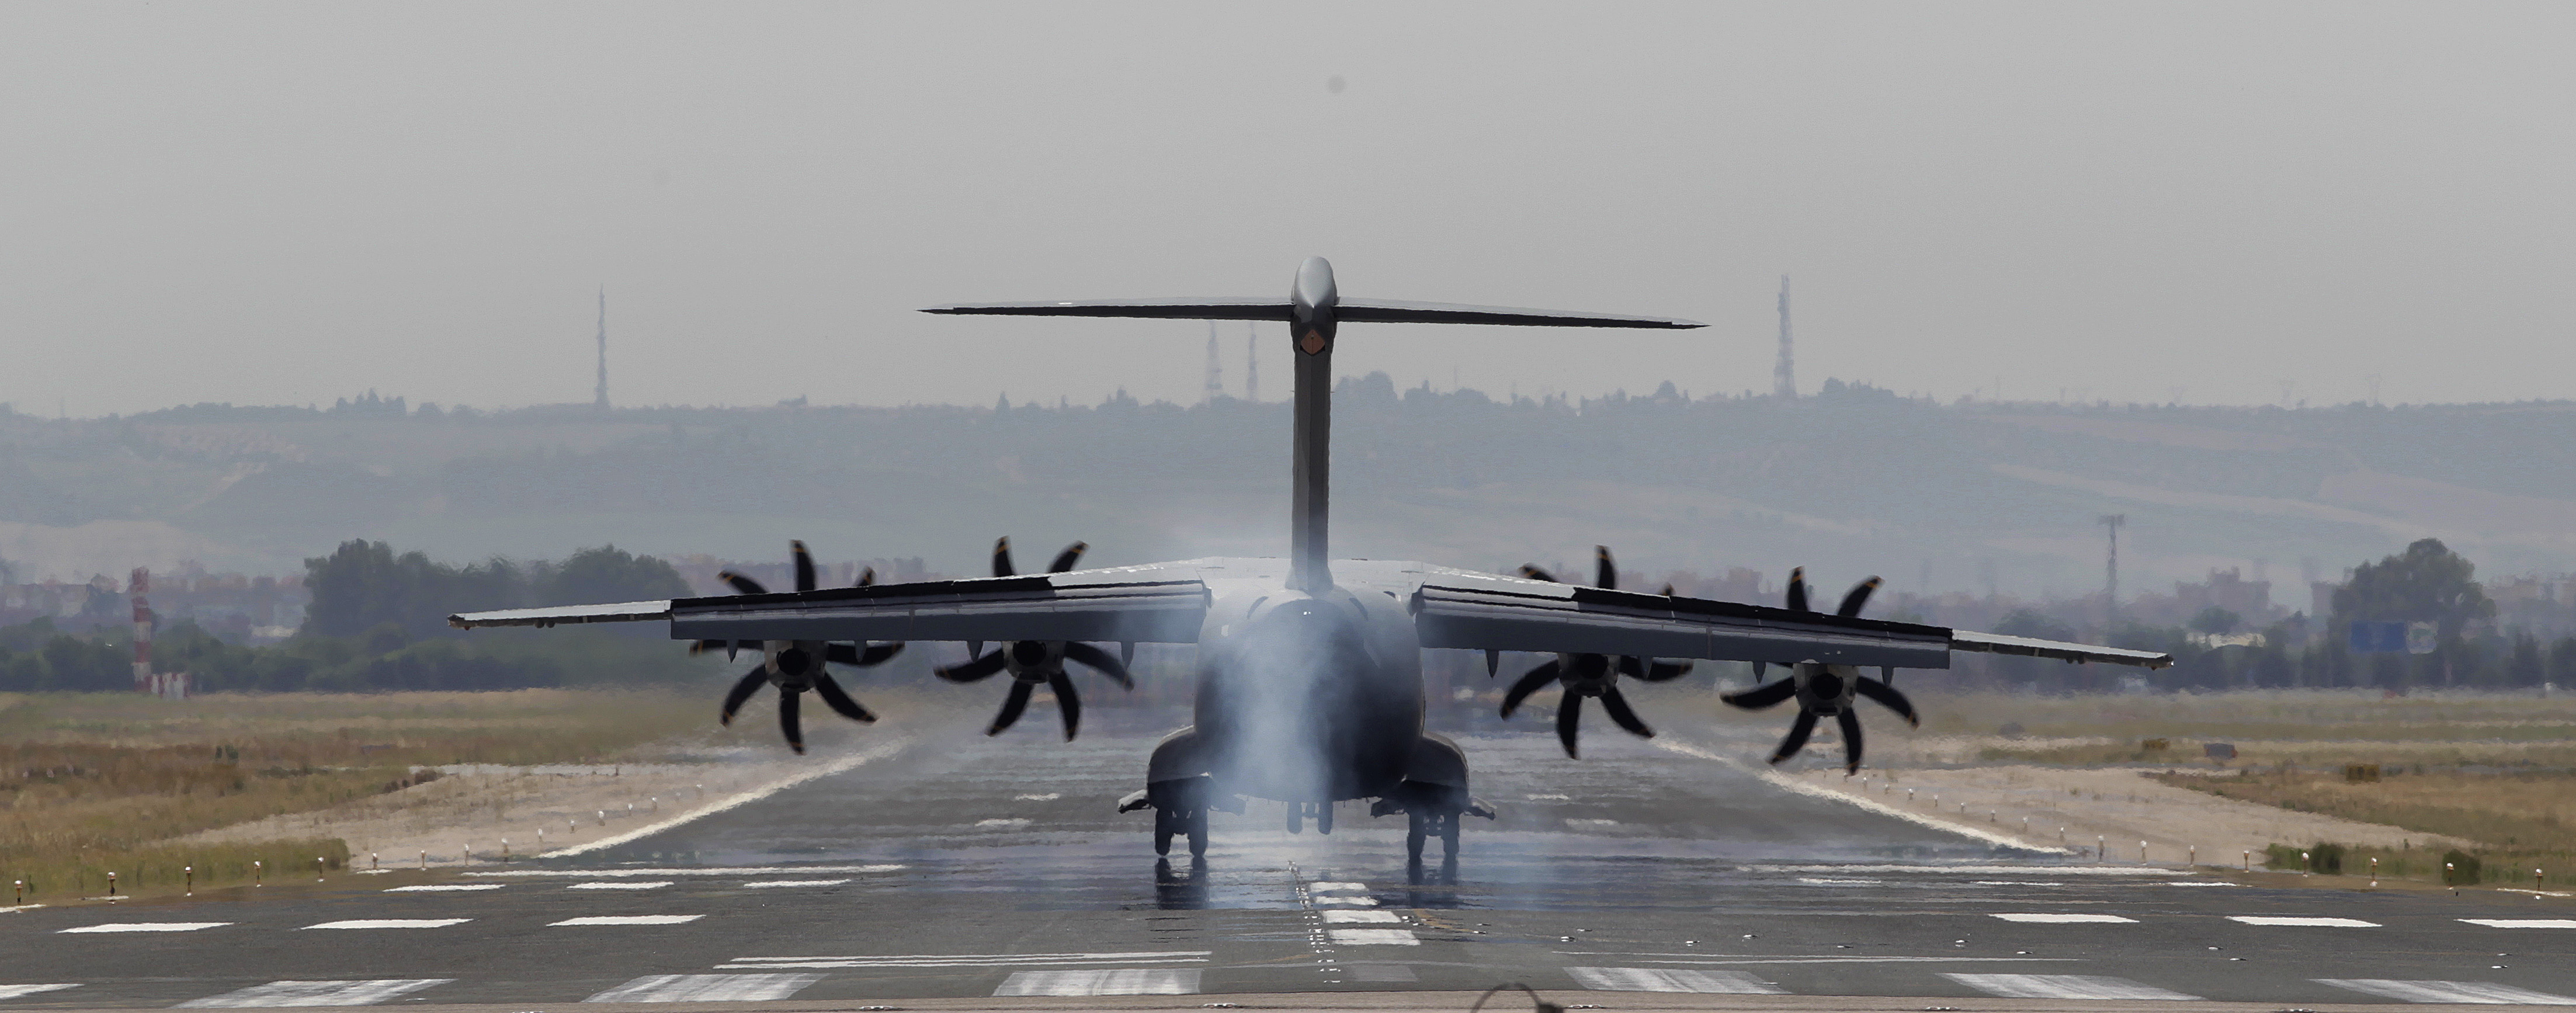 Airbus A400M grounded across Europe after fatal crash - NZ